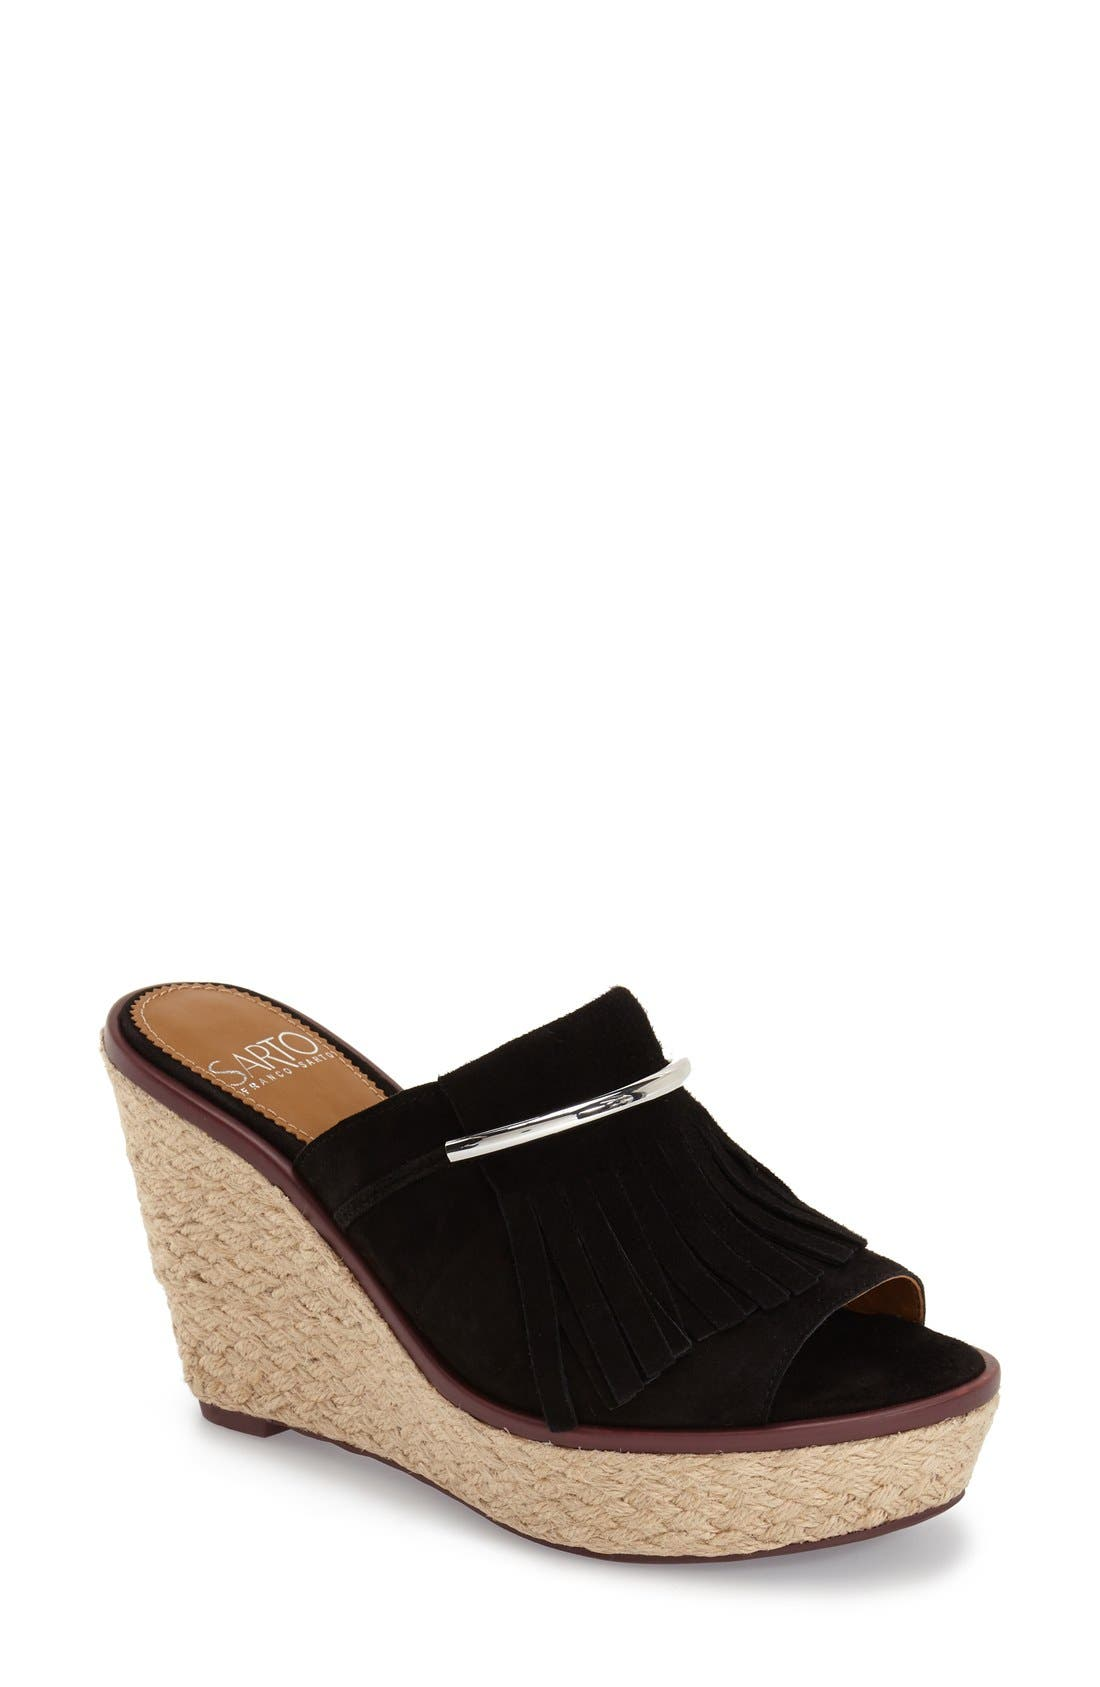 'Candace' Wedge Mule,                         Main,                         color,